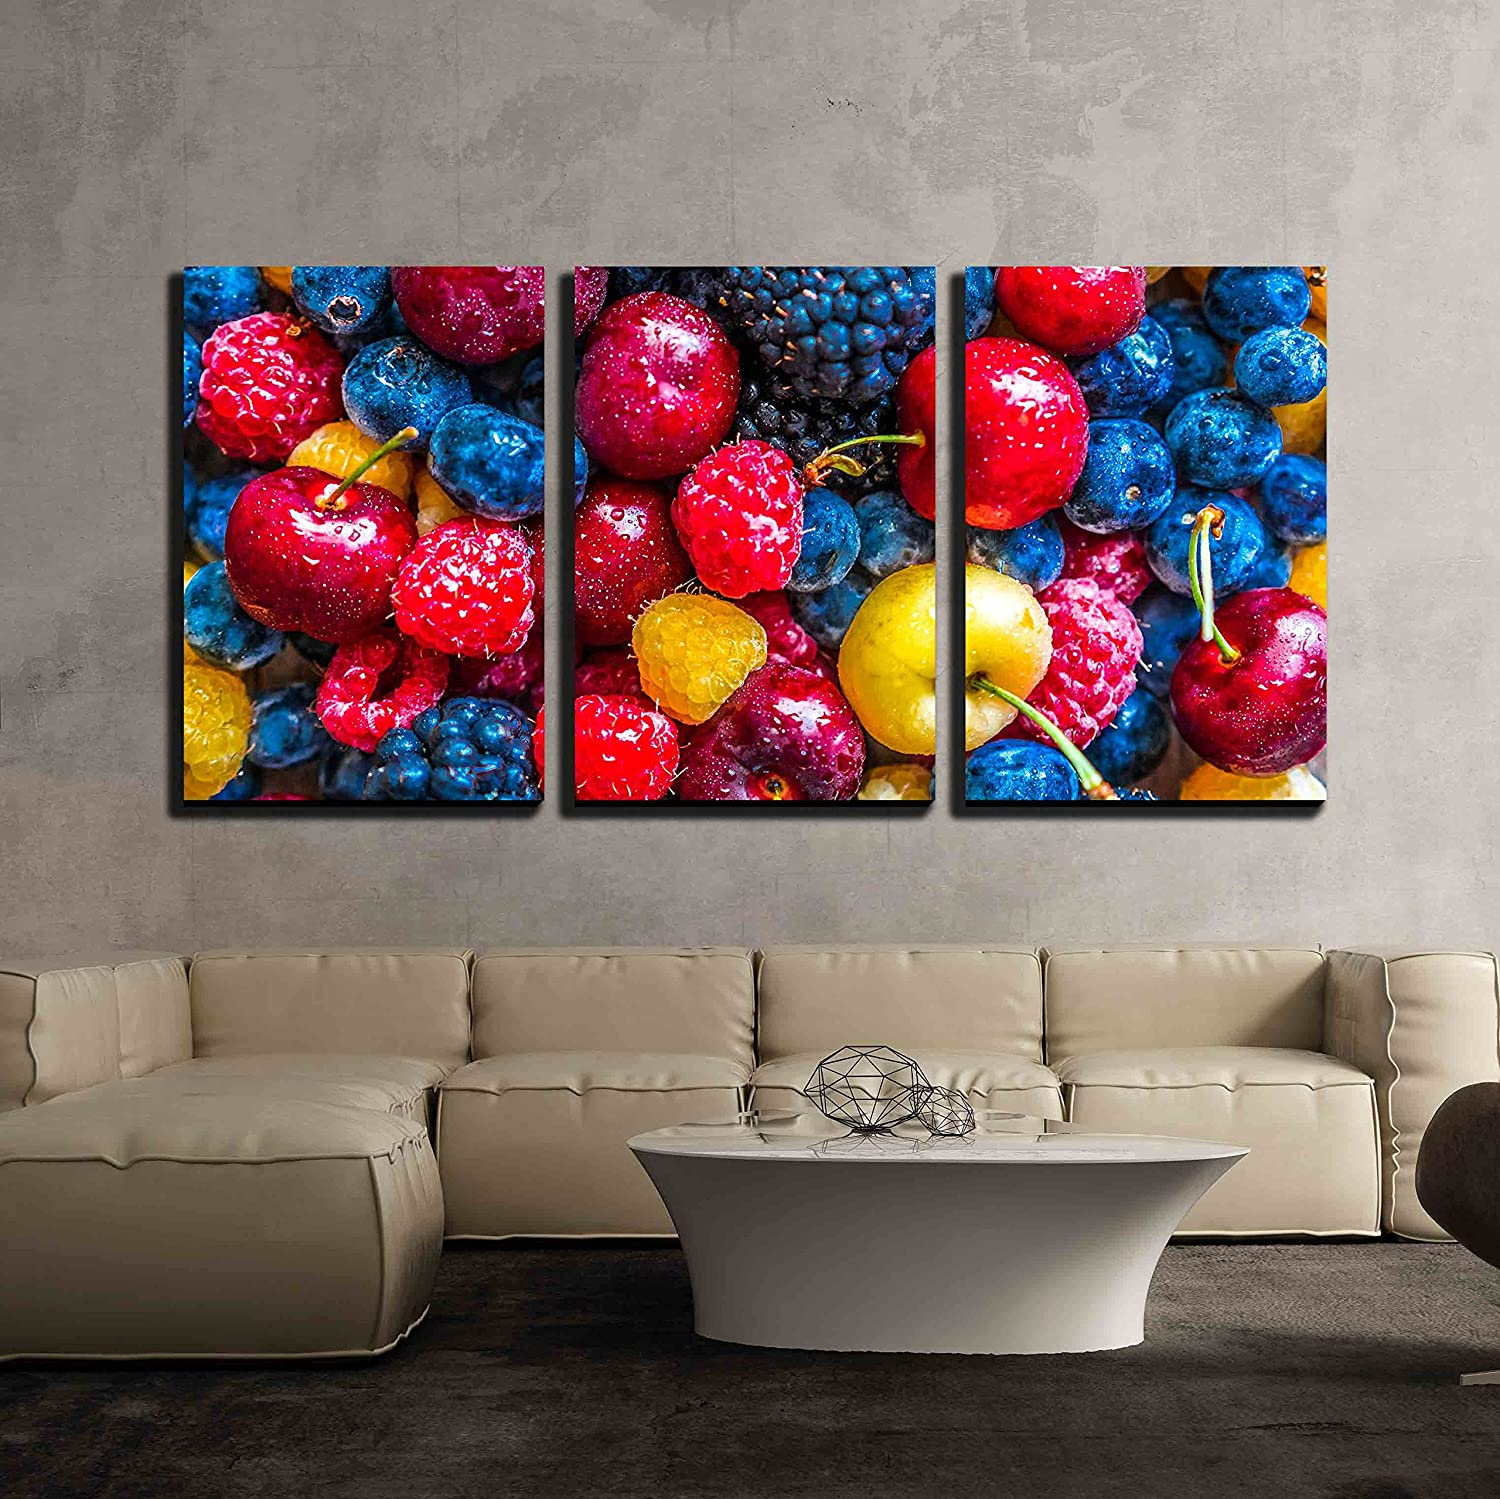 Wall26  3 Piece Canvas Wall Art  Mix Of